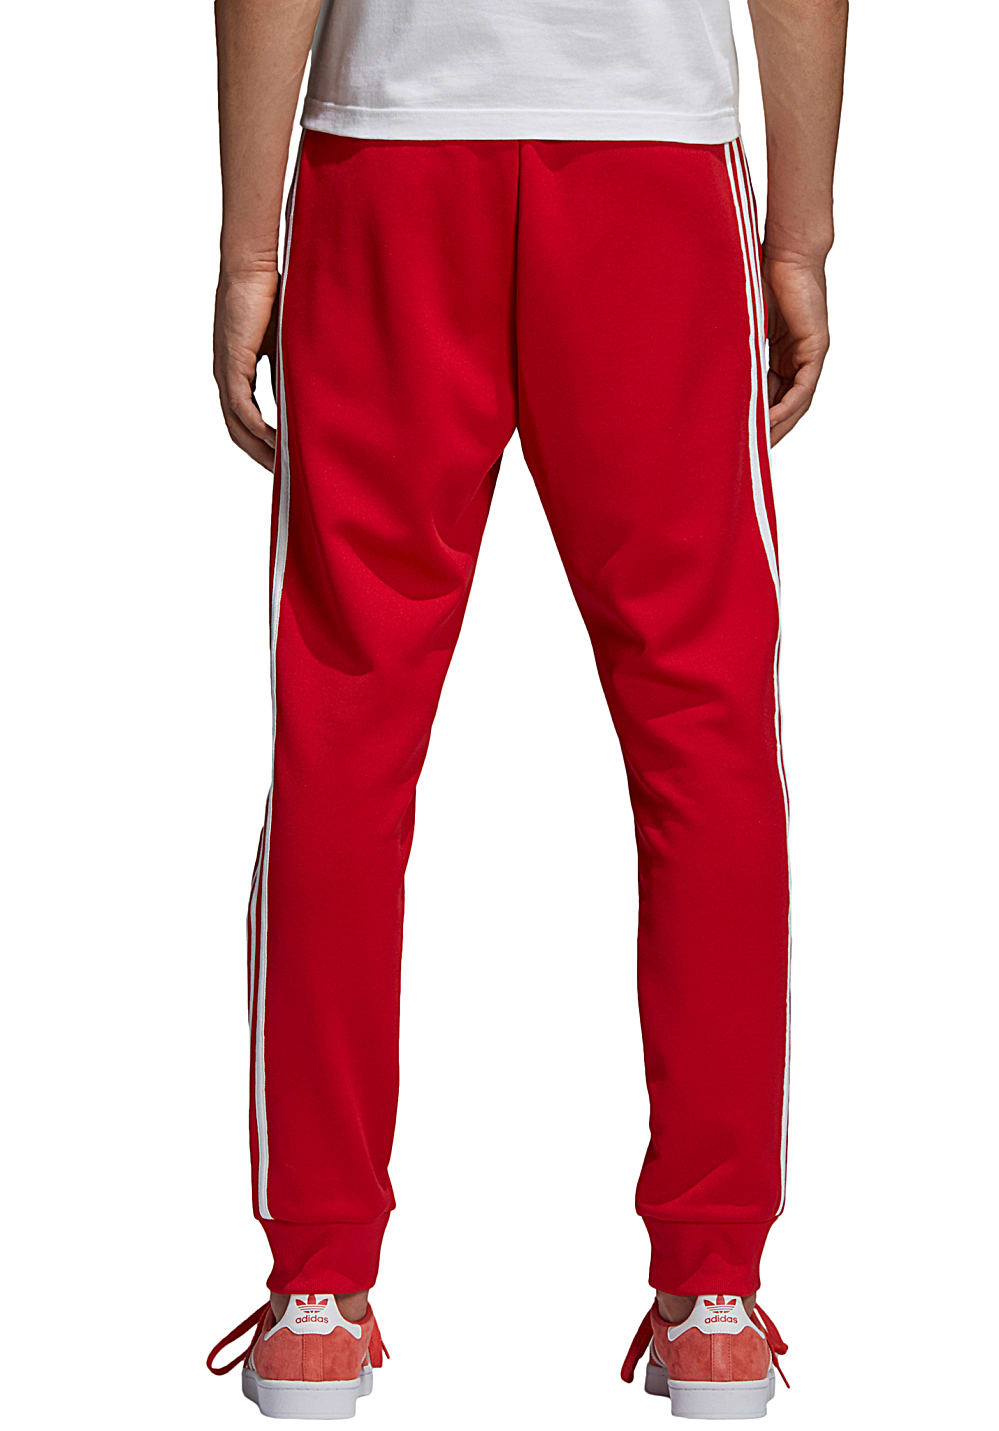 588770b1c9bea0 adidas Originals Sst Tp - Trainingshose für Herren - Rot - Planet Sports  adidas jogging hosen